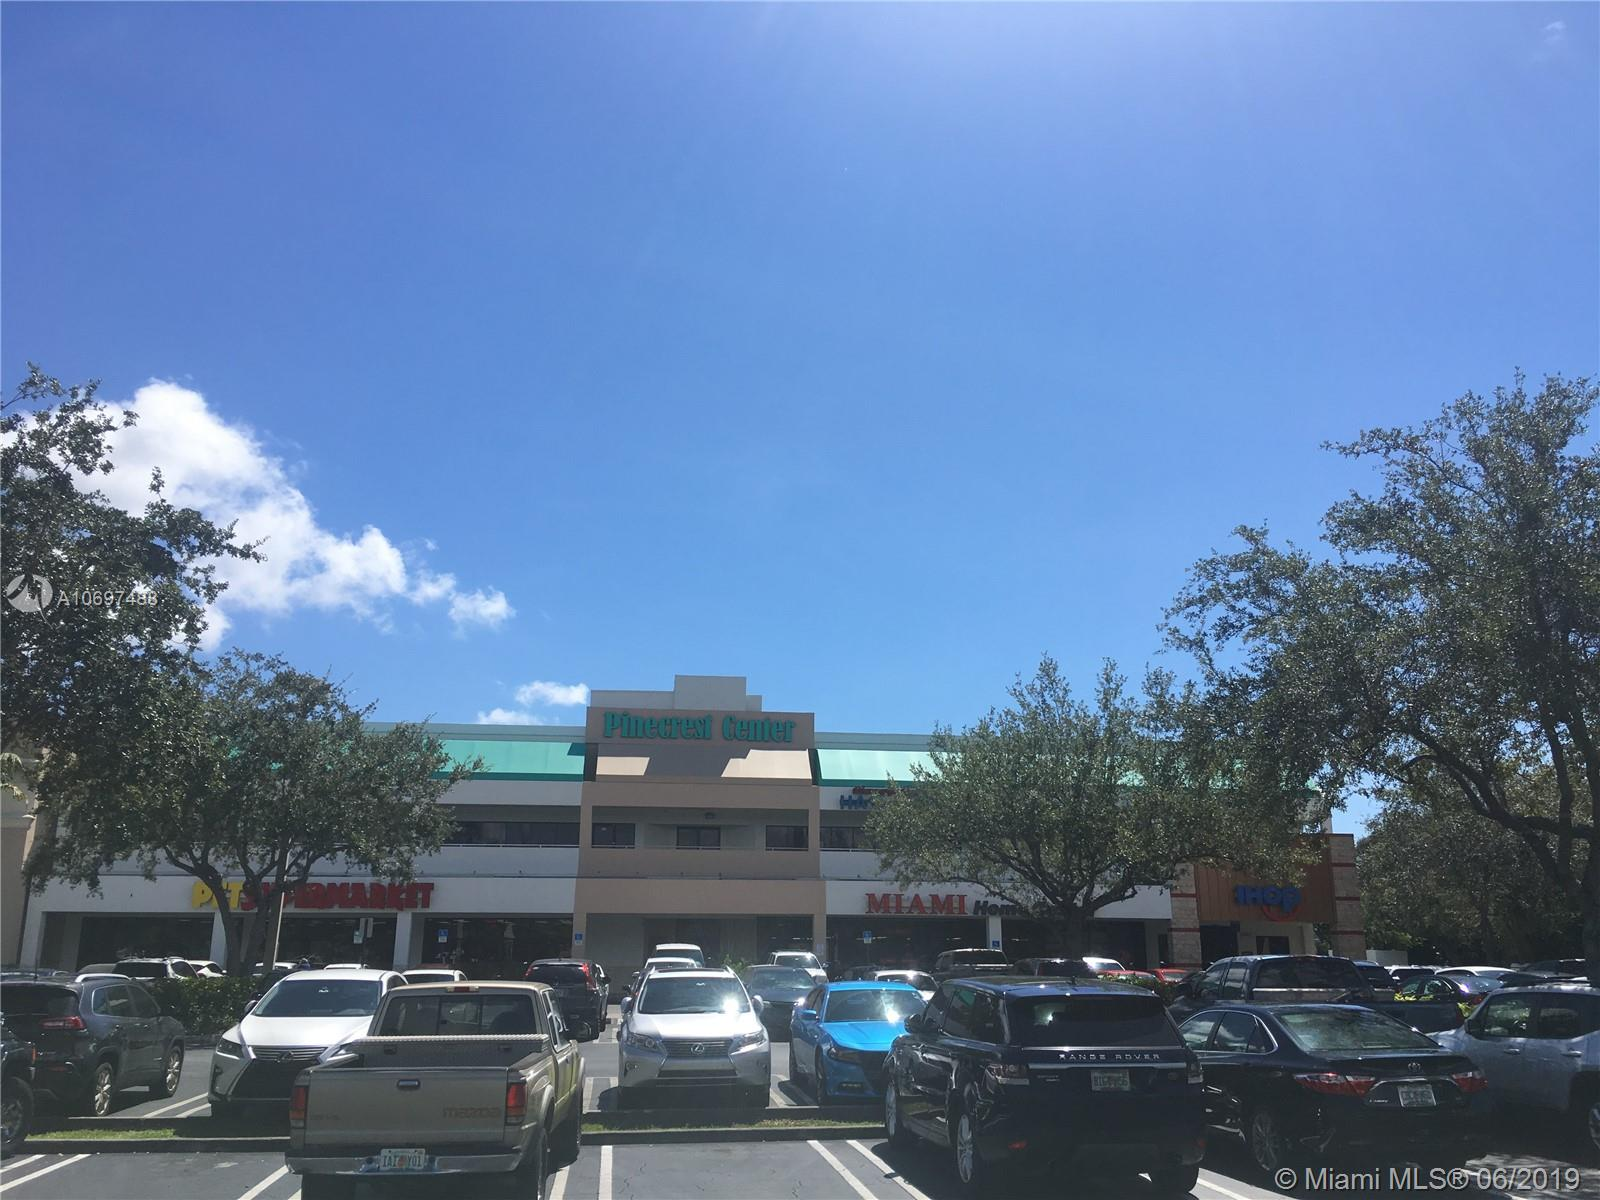 Executive Suites available for lease - Space of 238 Square Feet, 441 Square Feet, & 741 Square Feet available.Prices and compensation vary. Please call listing agent for details.